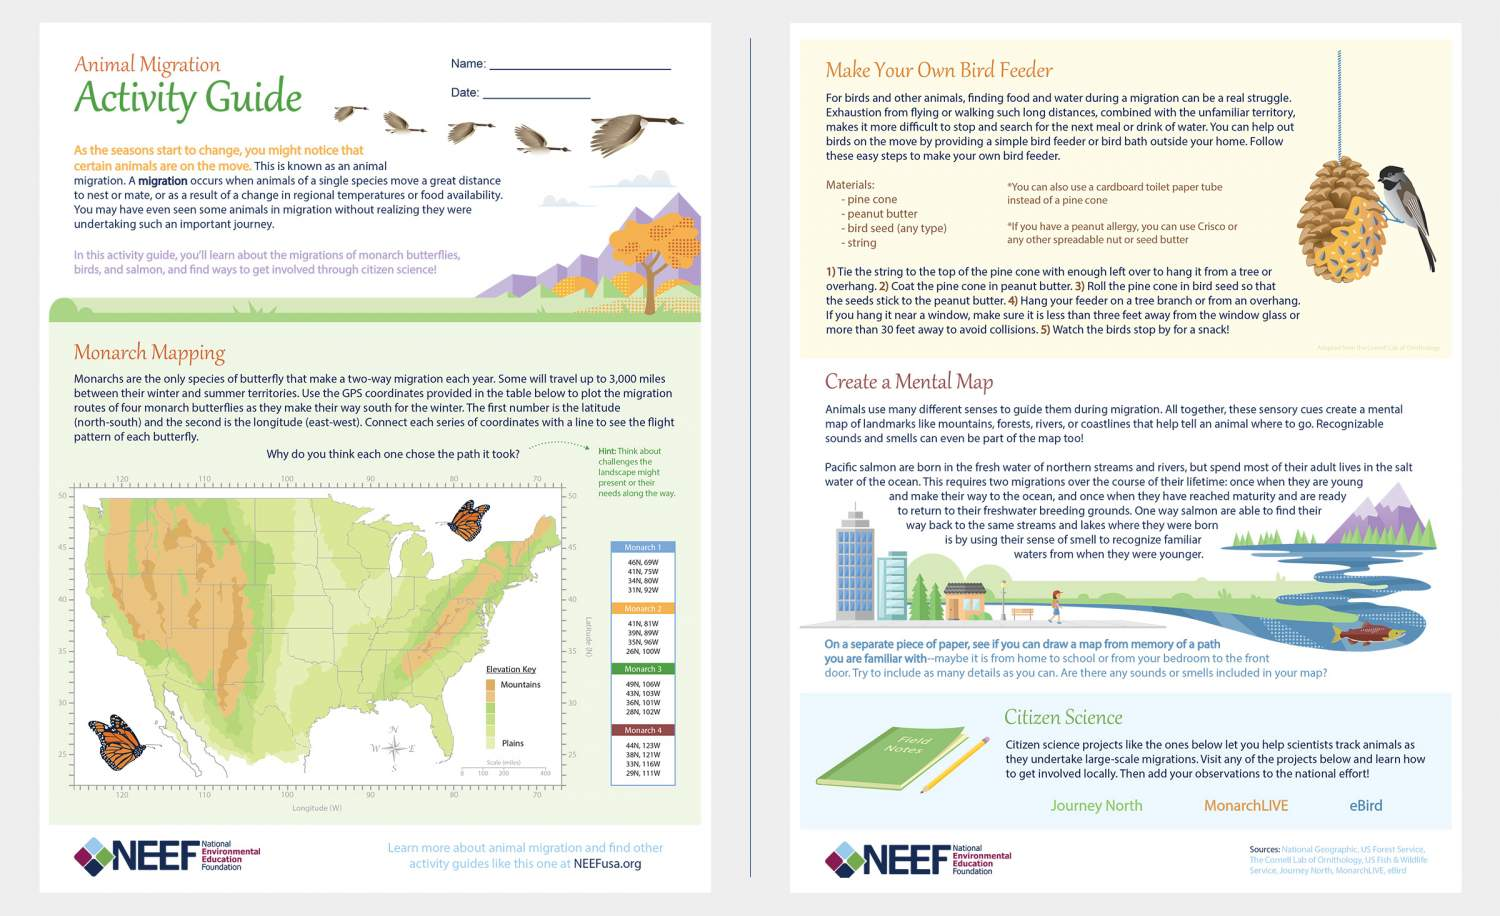 Animal Migration Activity Guide page layout